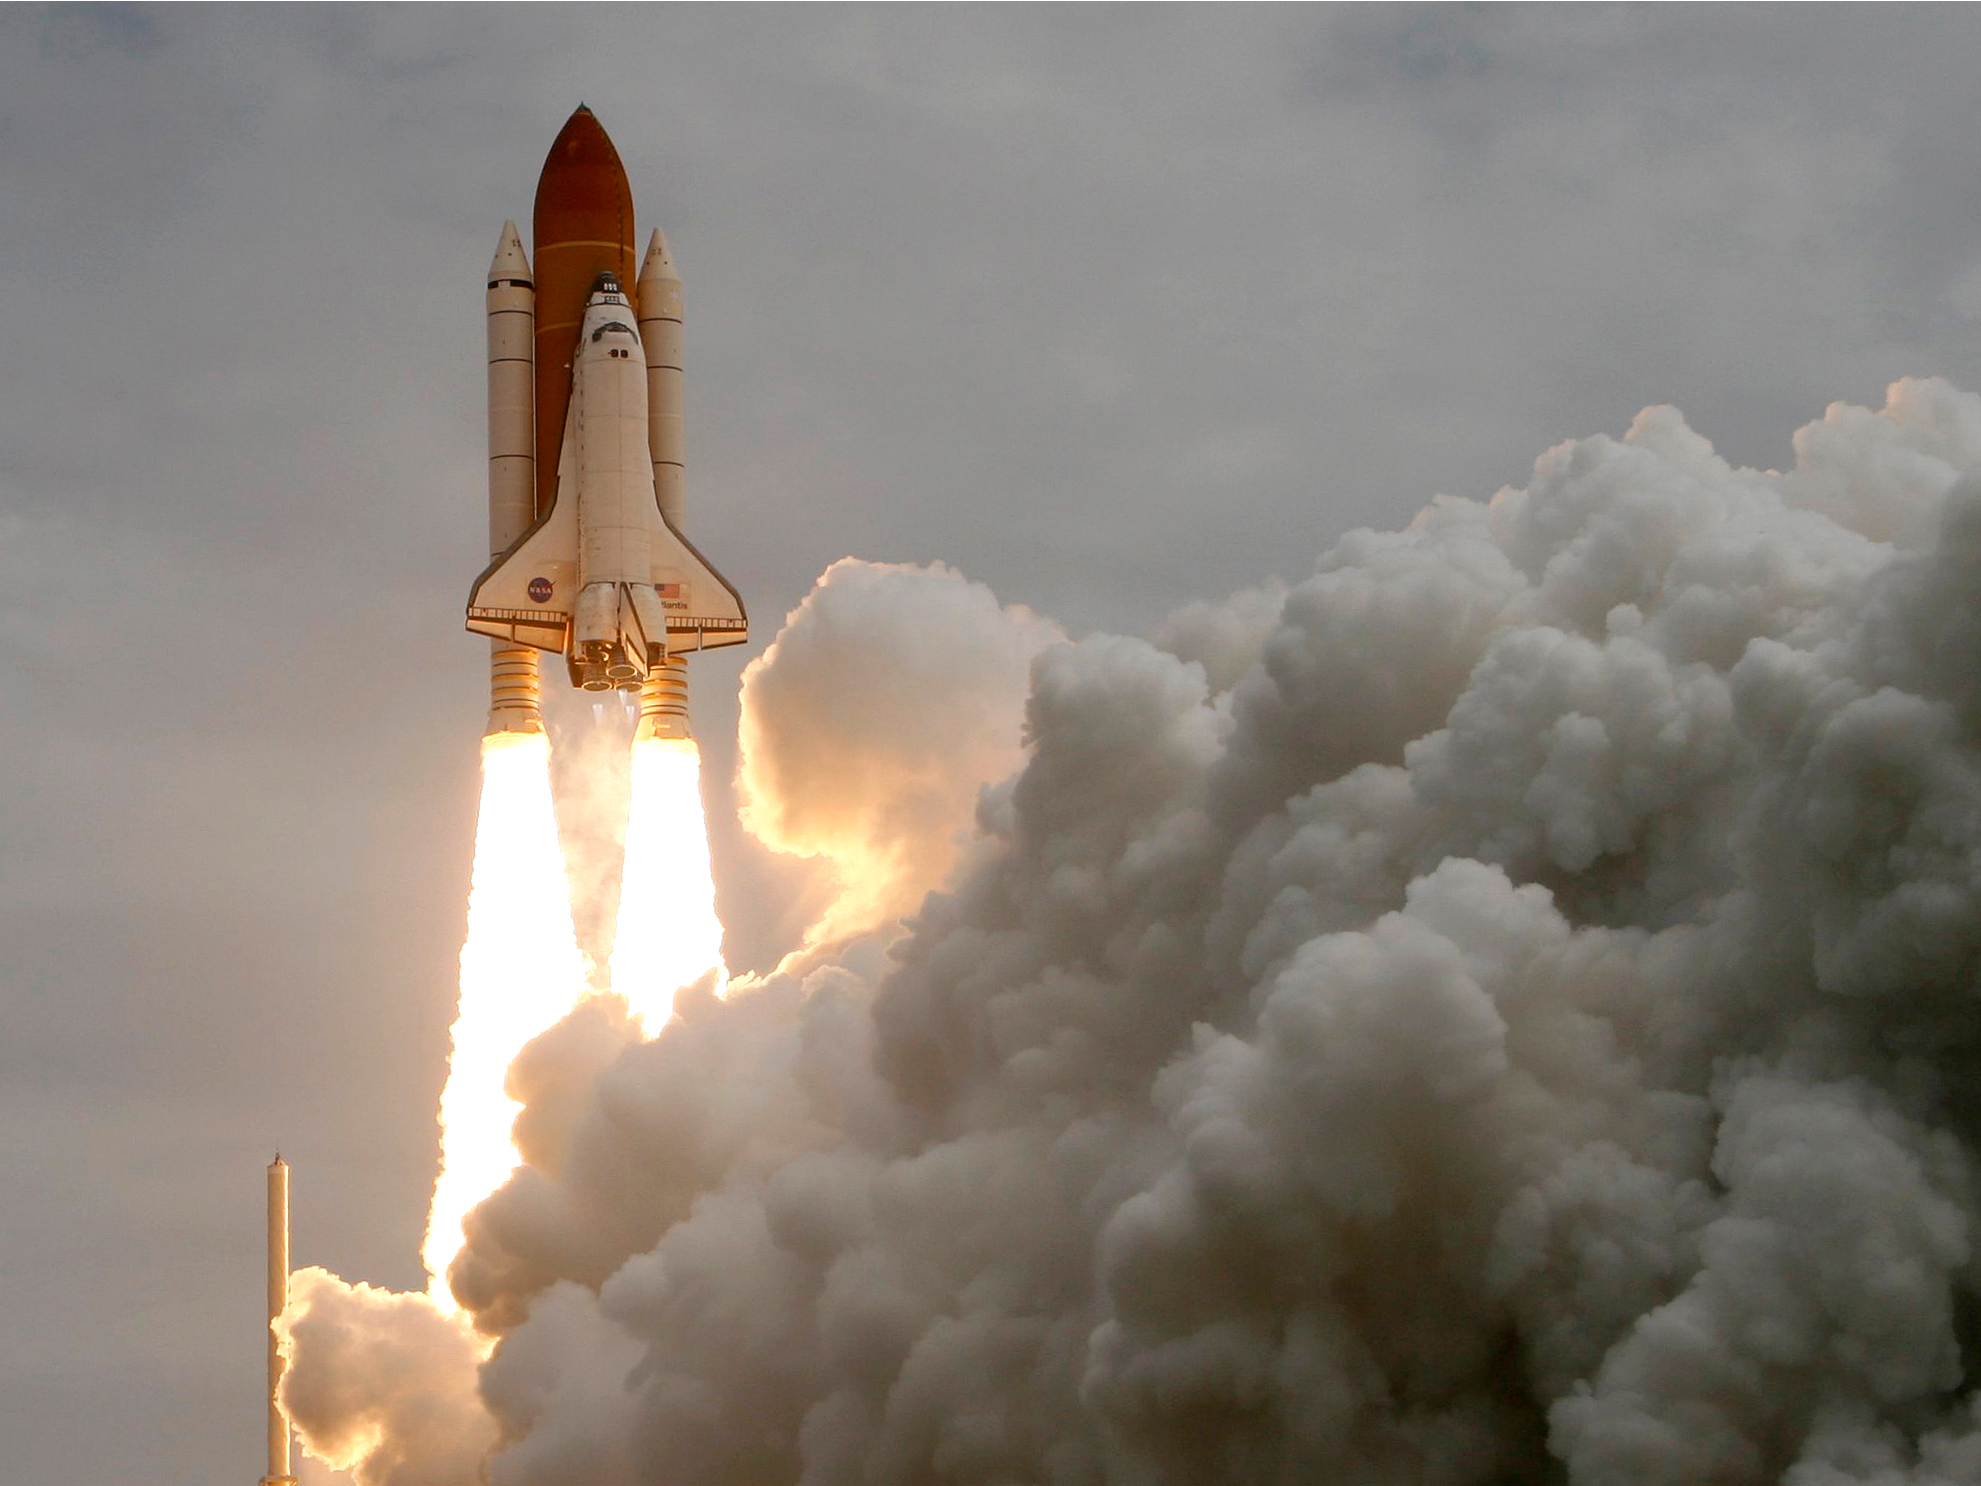 Australia Is Launching Its First Space Agency Hedge Fund Investing Buying Investment Property Investing